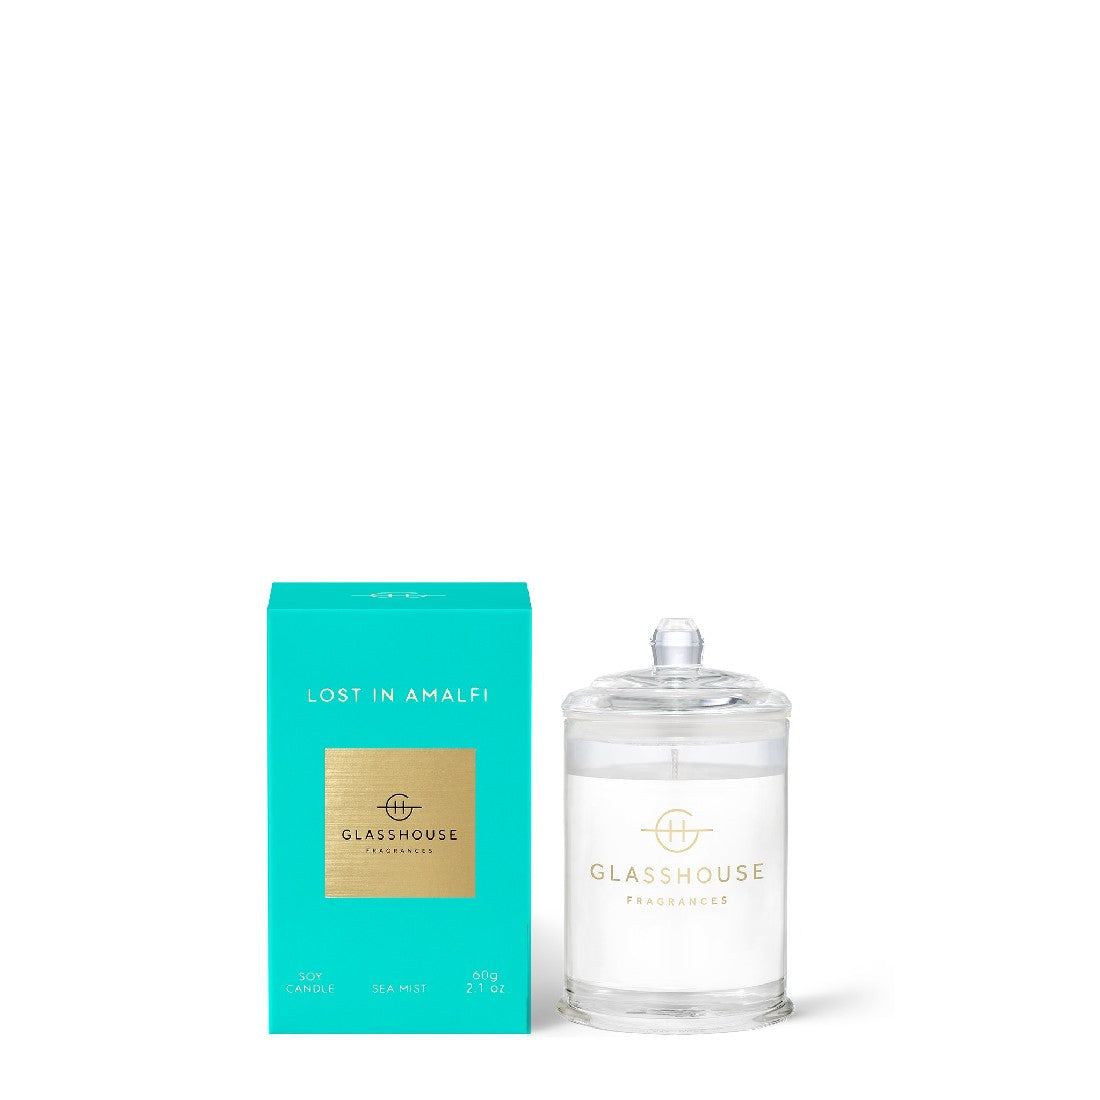 GLASSHOUSE SEA MIST- LOST IN AMALFI 60g SOY CANDLE